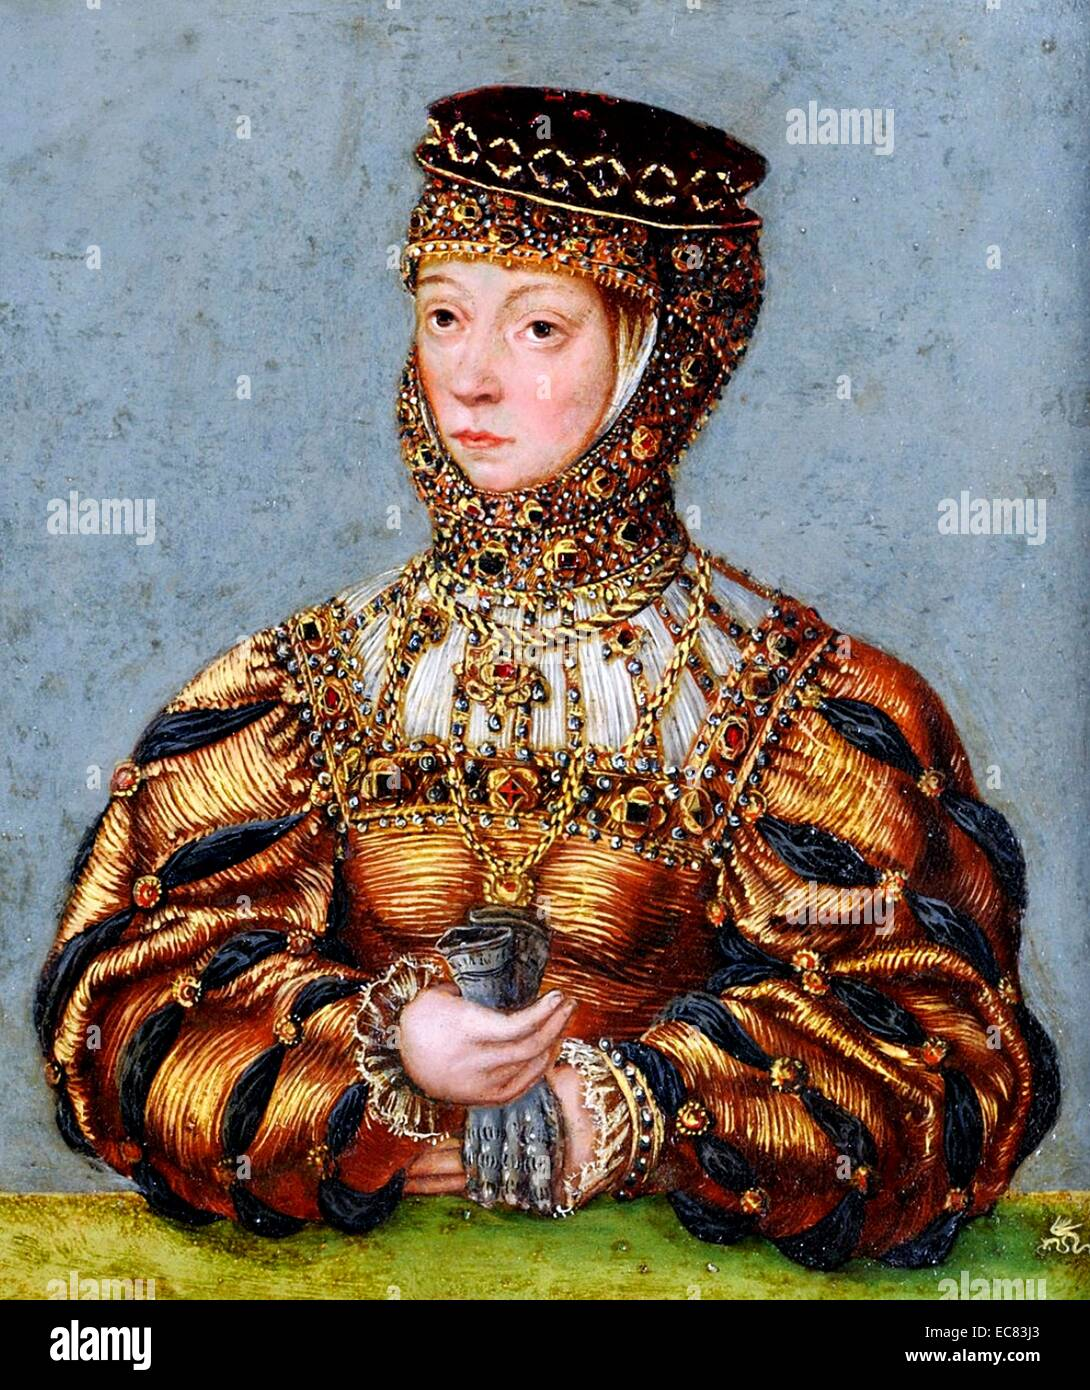 Barbara Radziwi?l; Queen of Poland and Grand Duchess of Lithuania - Stock Image